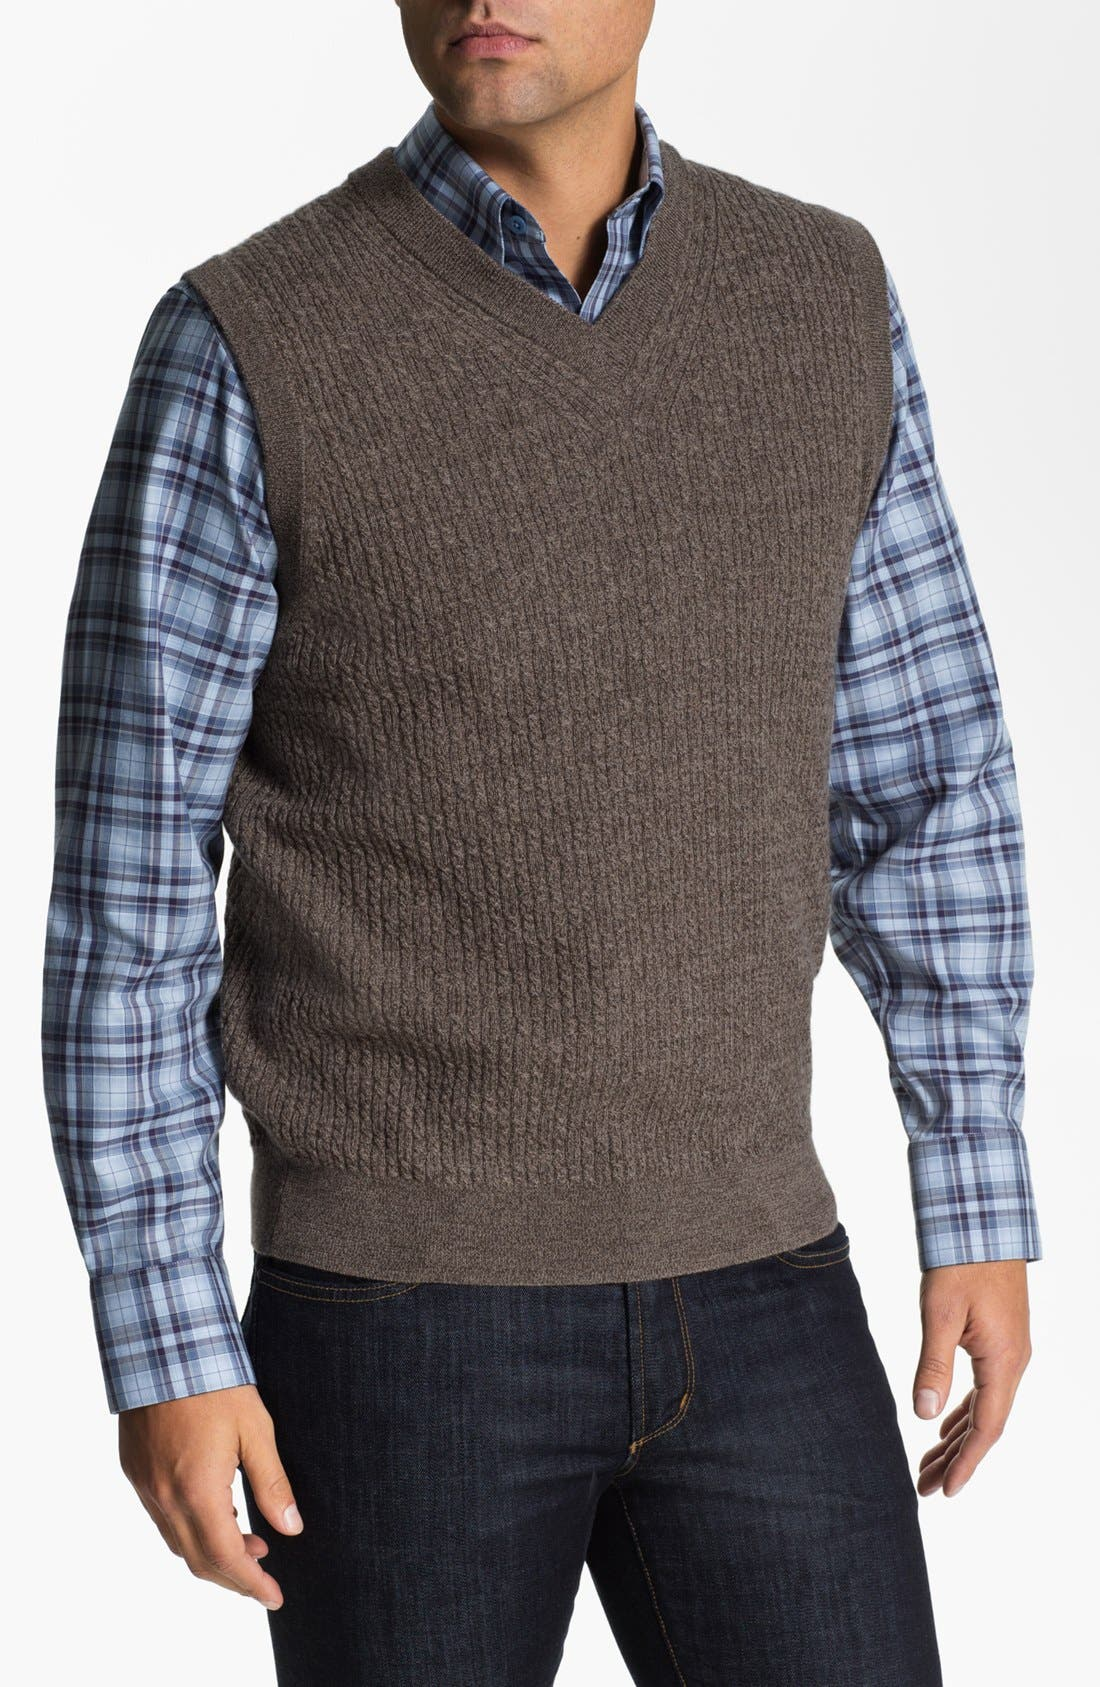 Main Image - Nordstrom Cable Knit Merino Wool Sweater Vest